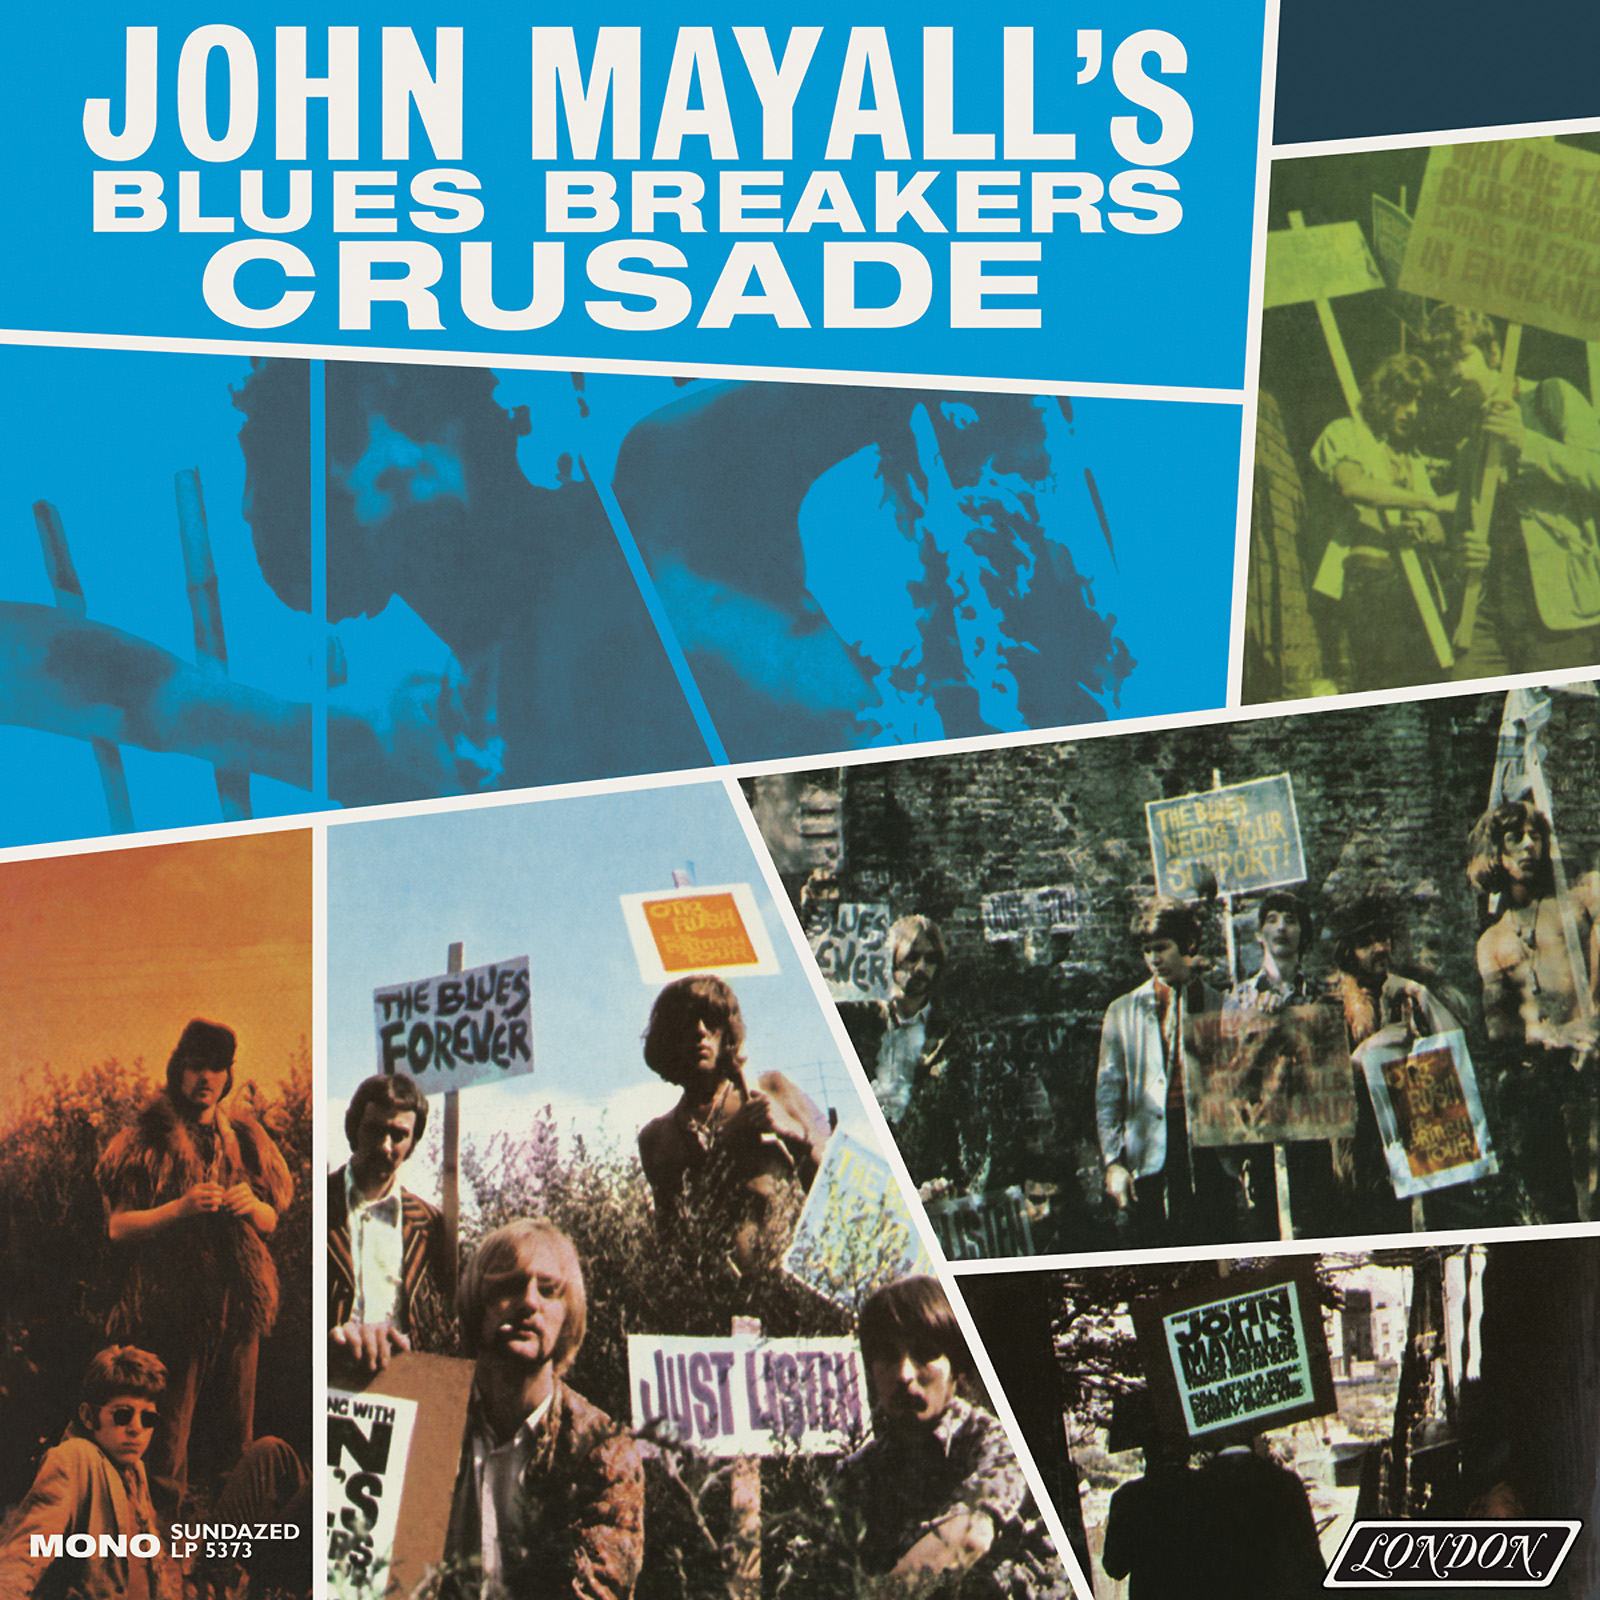 Mayall, John and the Blues Breakers - Crusade MONO Edition LP